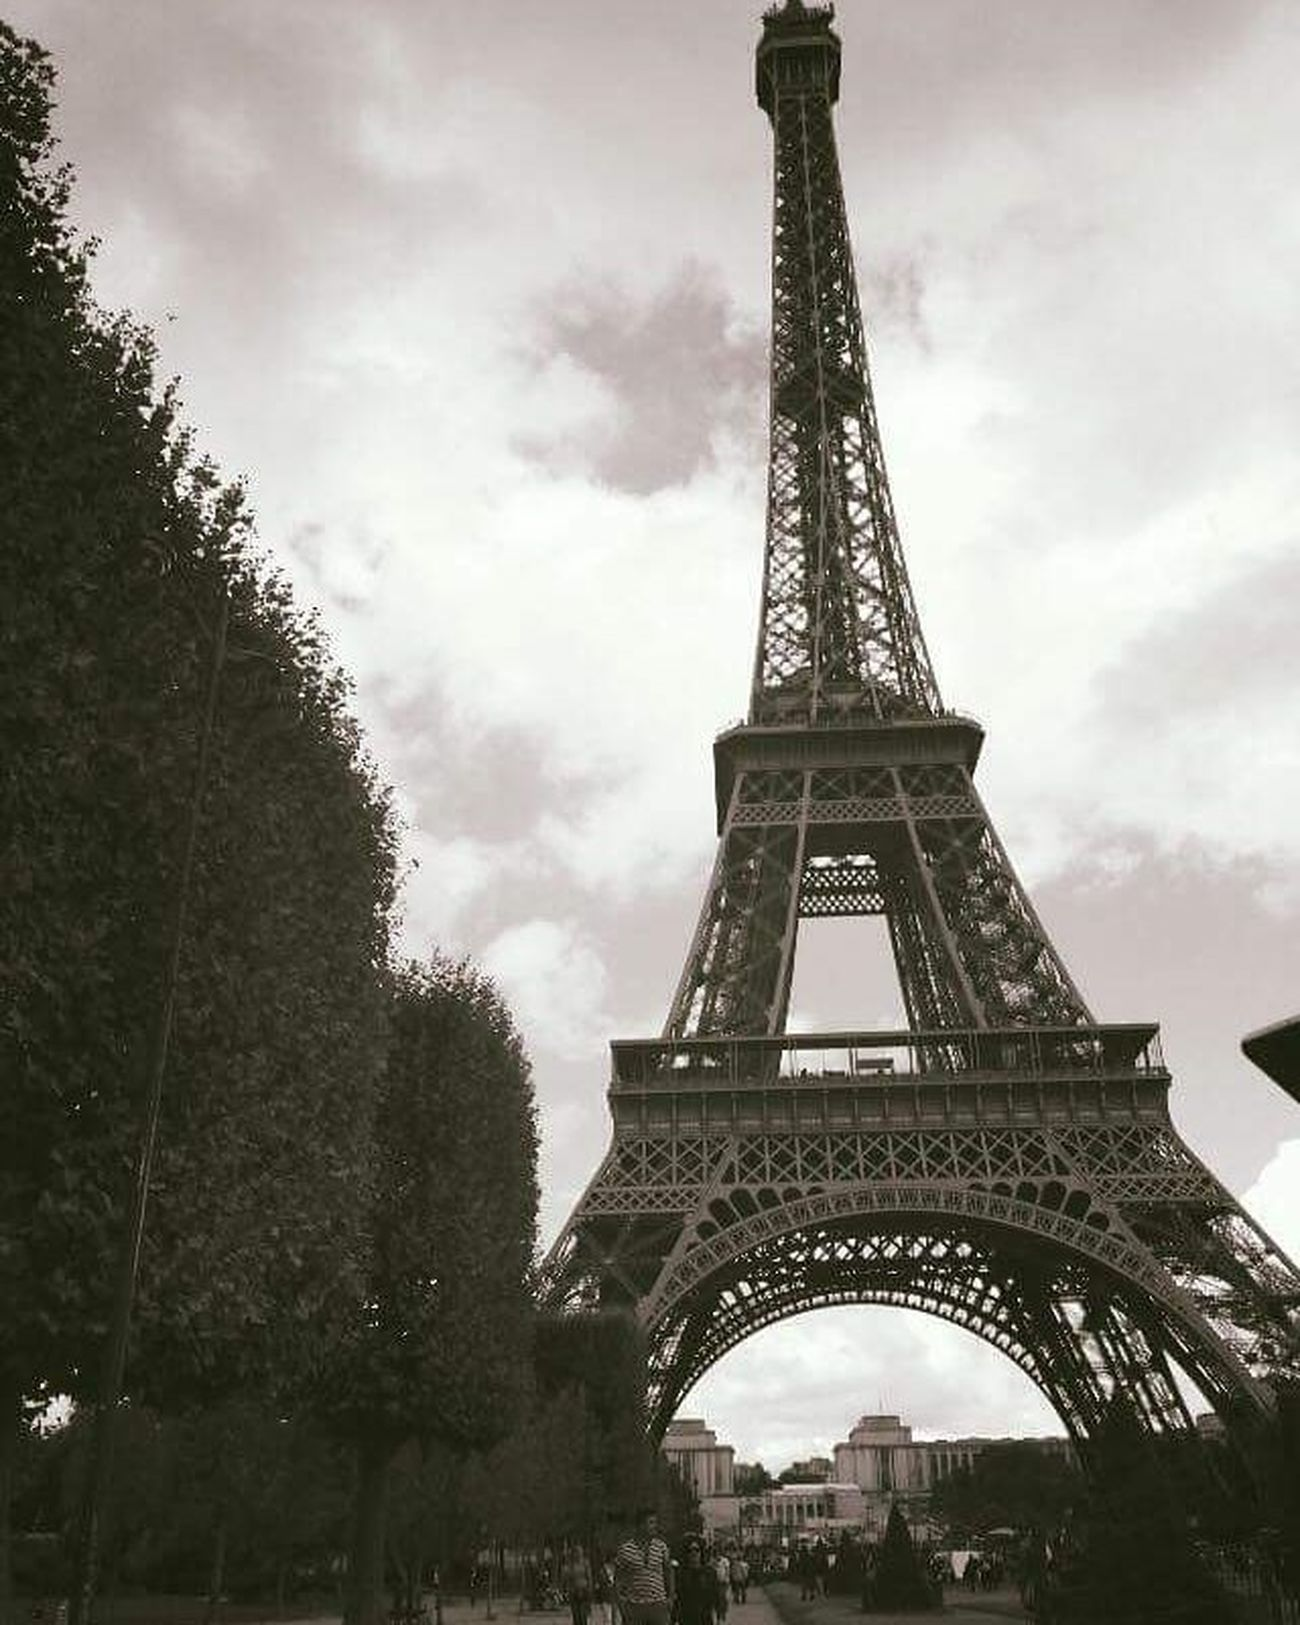 Likeit Loveit Goood Paris Eiffeltower Bushes Astonishing Lushview Beautiful Blackandwhite Astonishingview Breathtaking Photographie  Stole